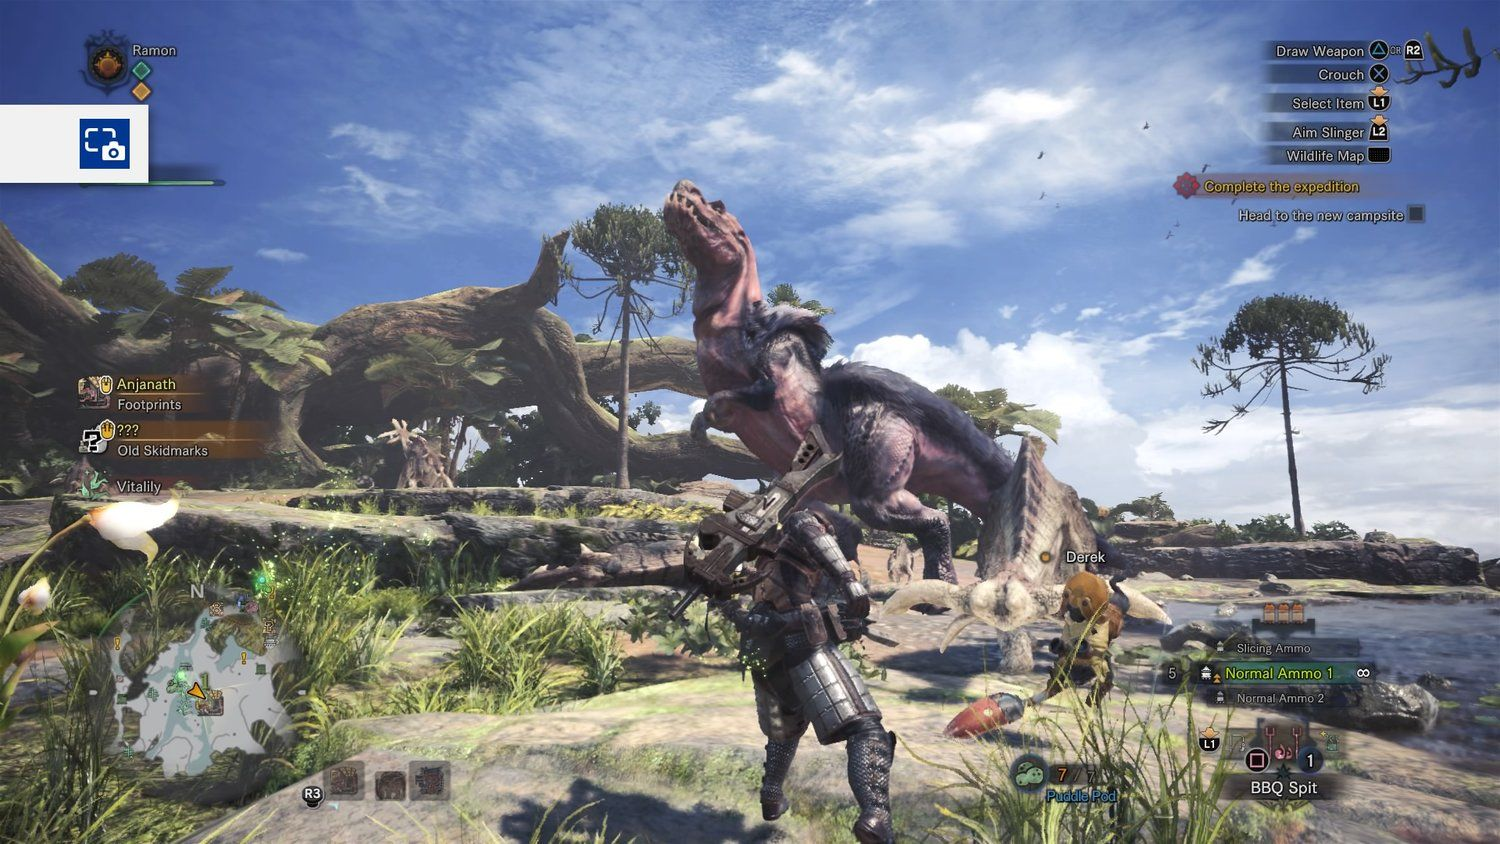 MONSTER HUNTER: WORLD Review: An Approachable Entry To A